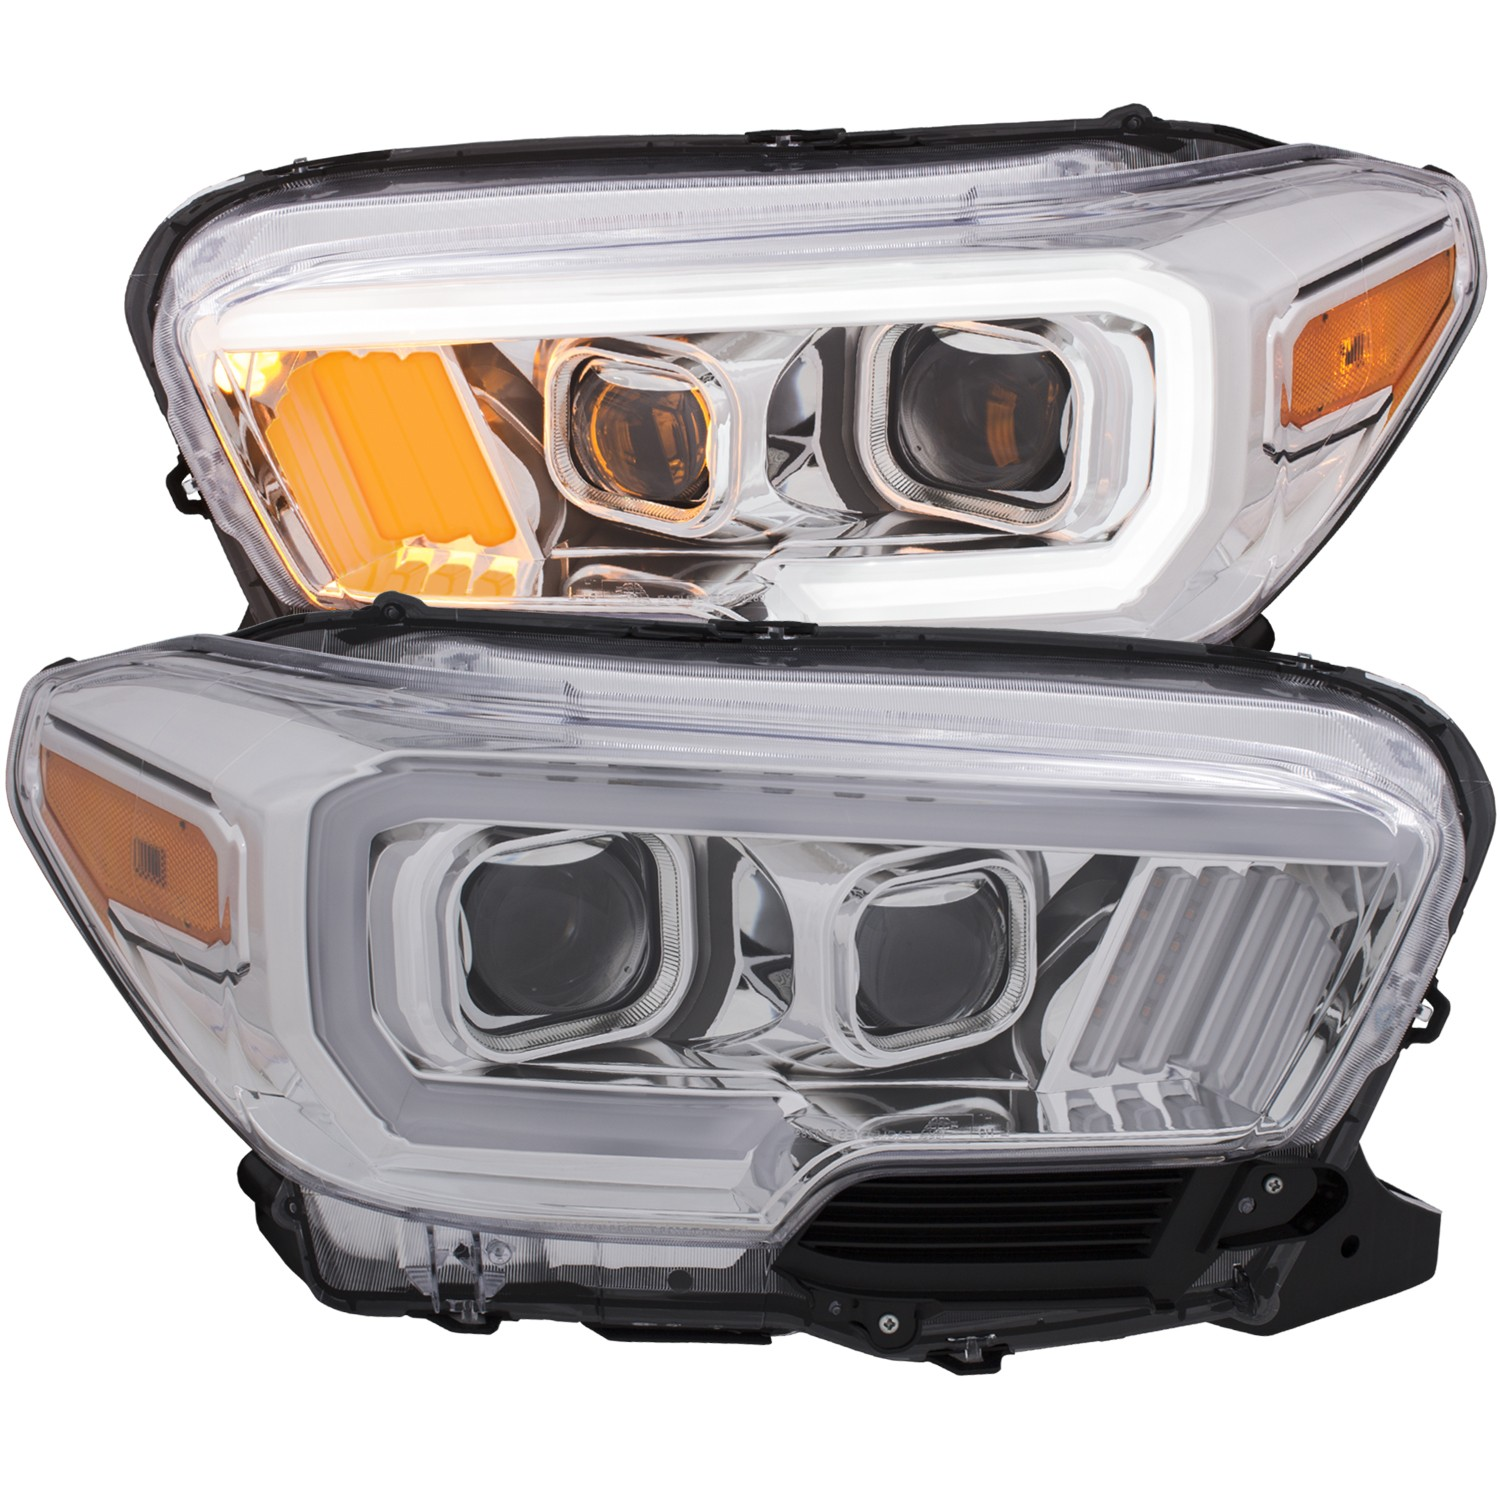 Anzo Tacoma Projector Plank Style Headlight Clear w/Amber (2016-18)